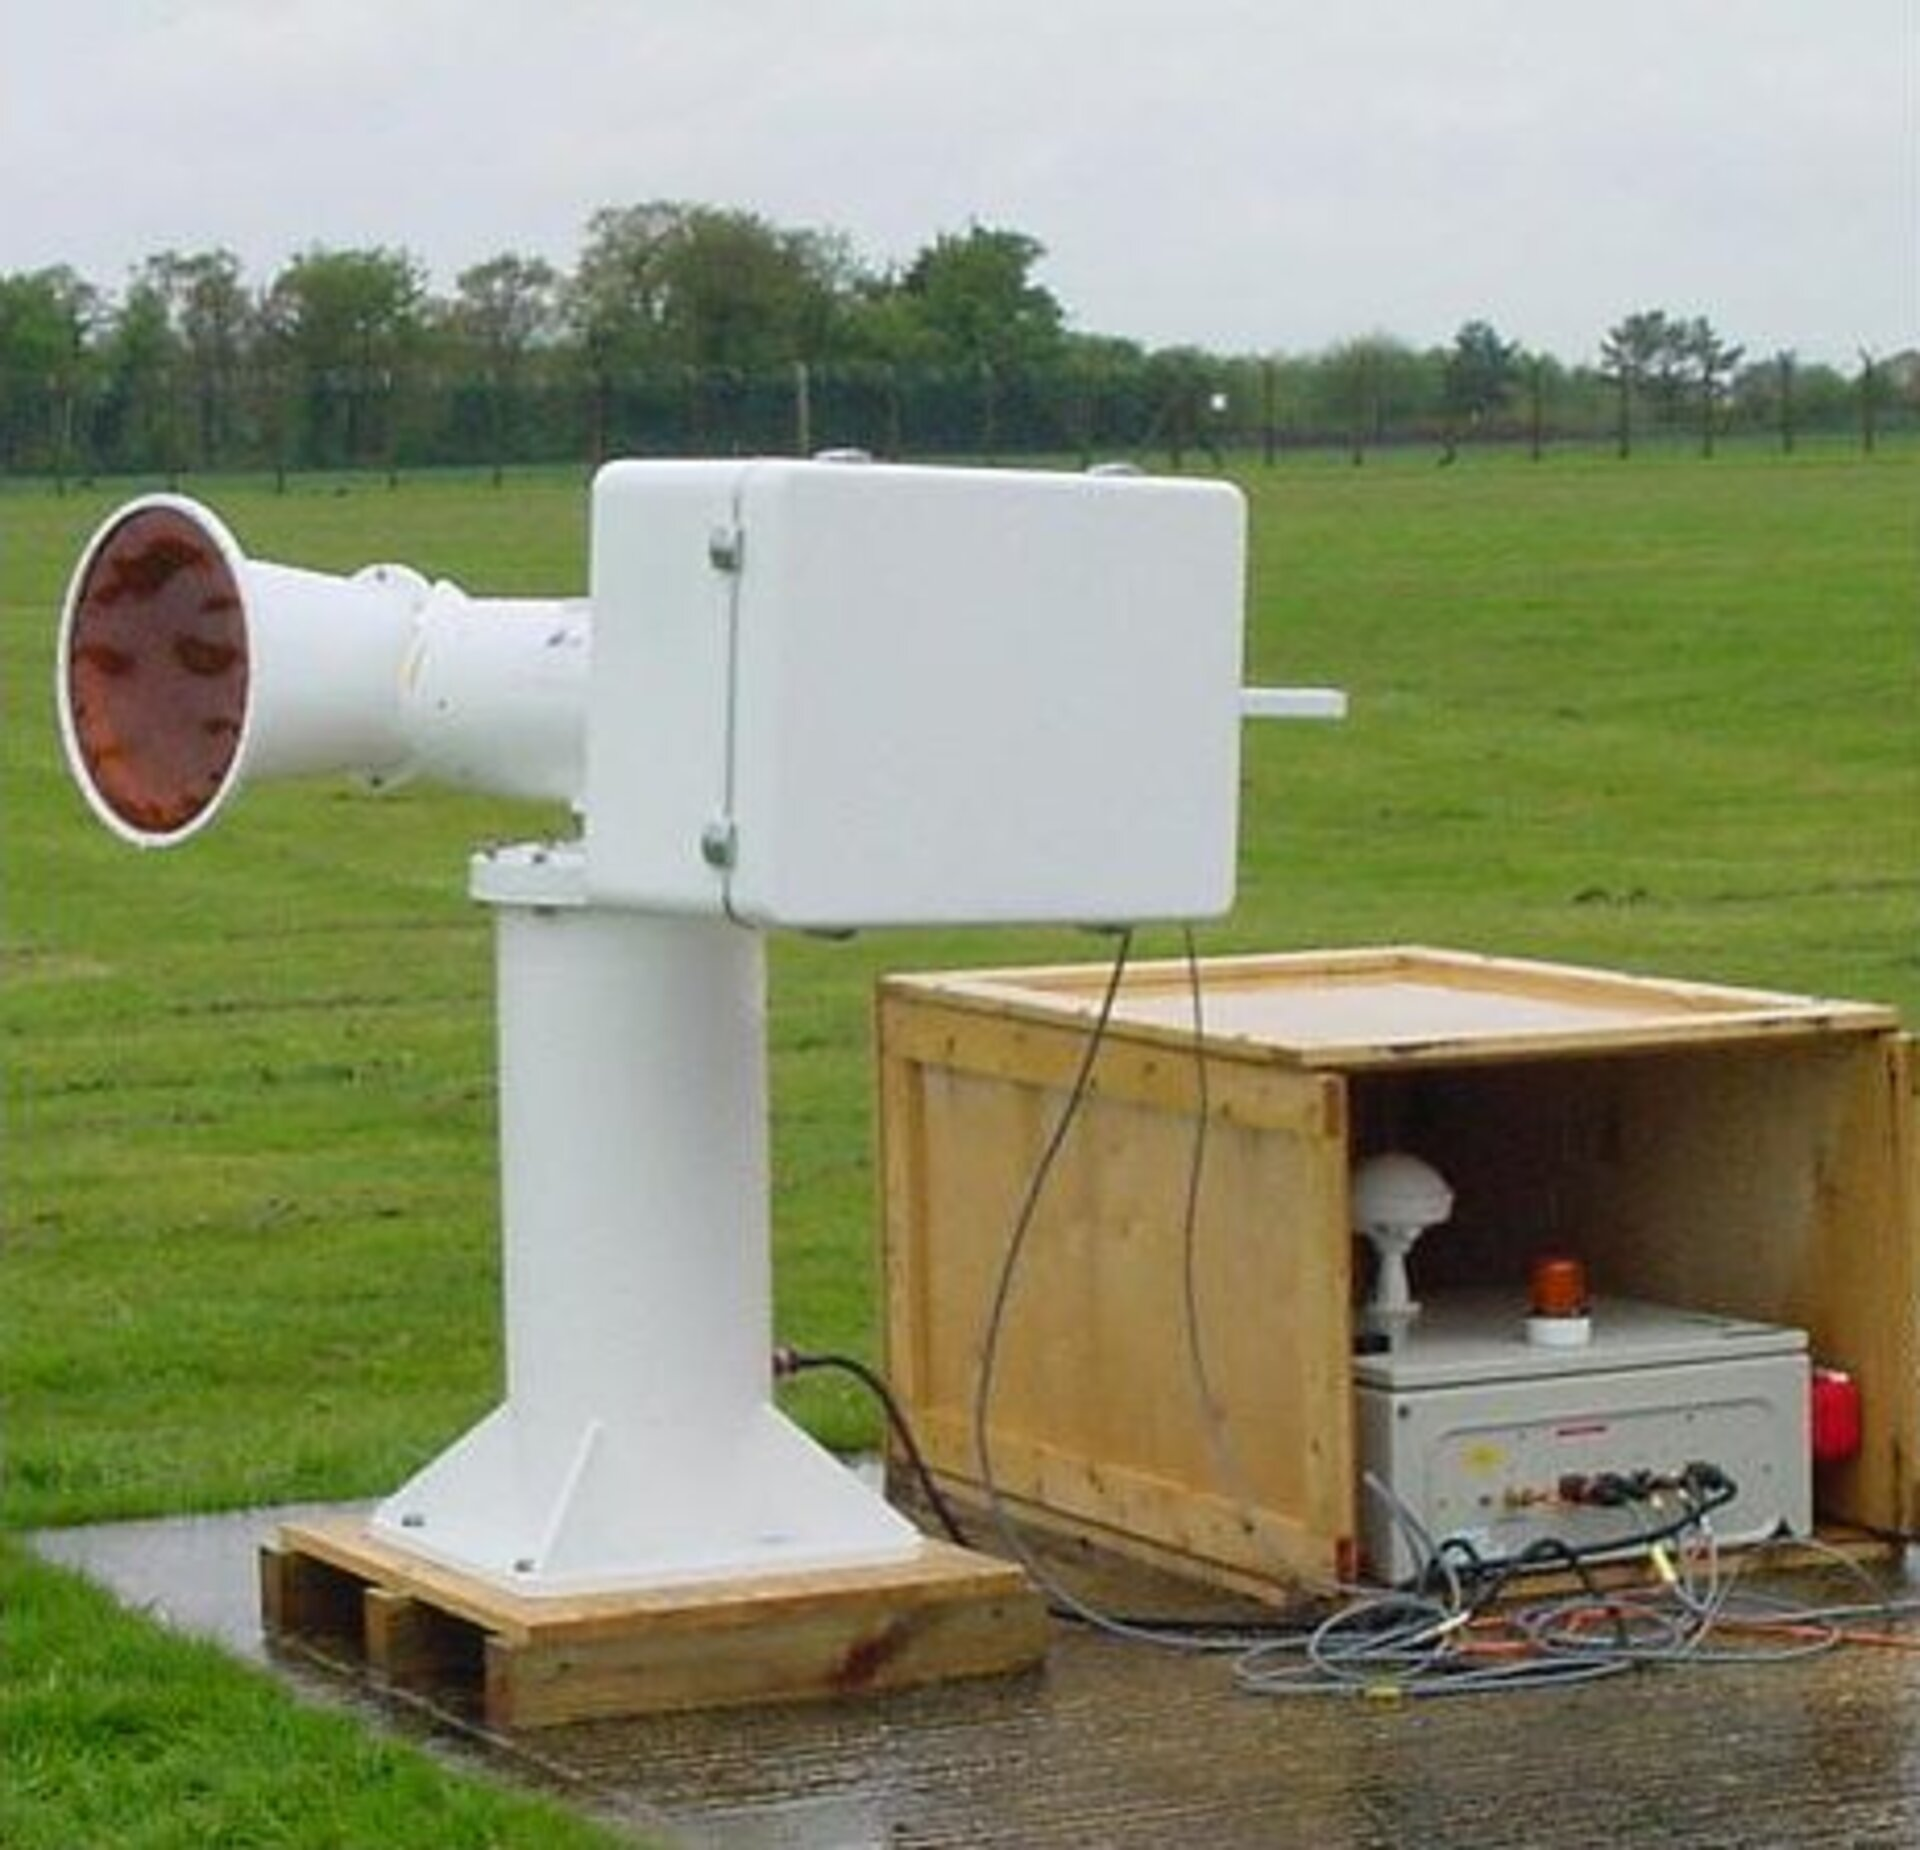 Prototype of an ASCAT transponder